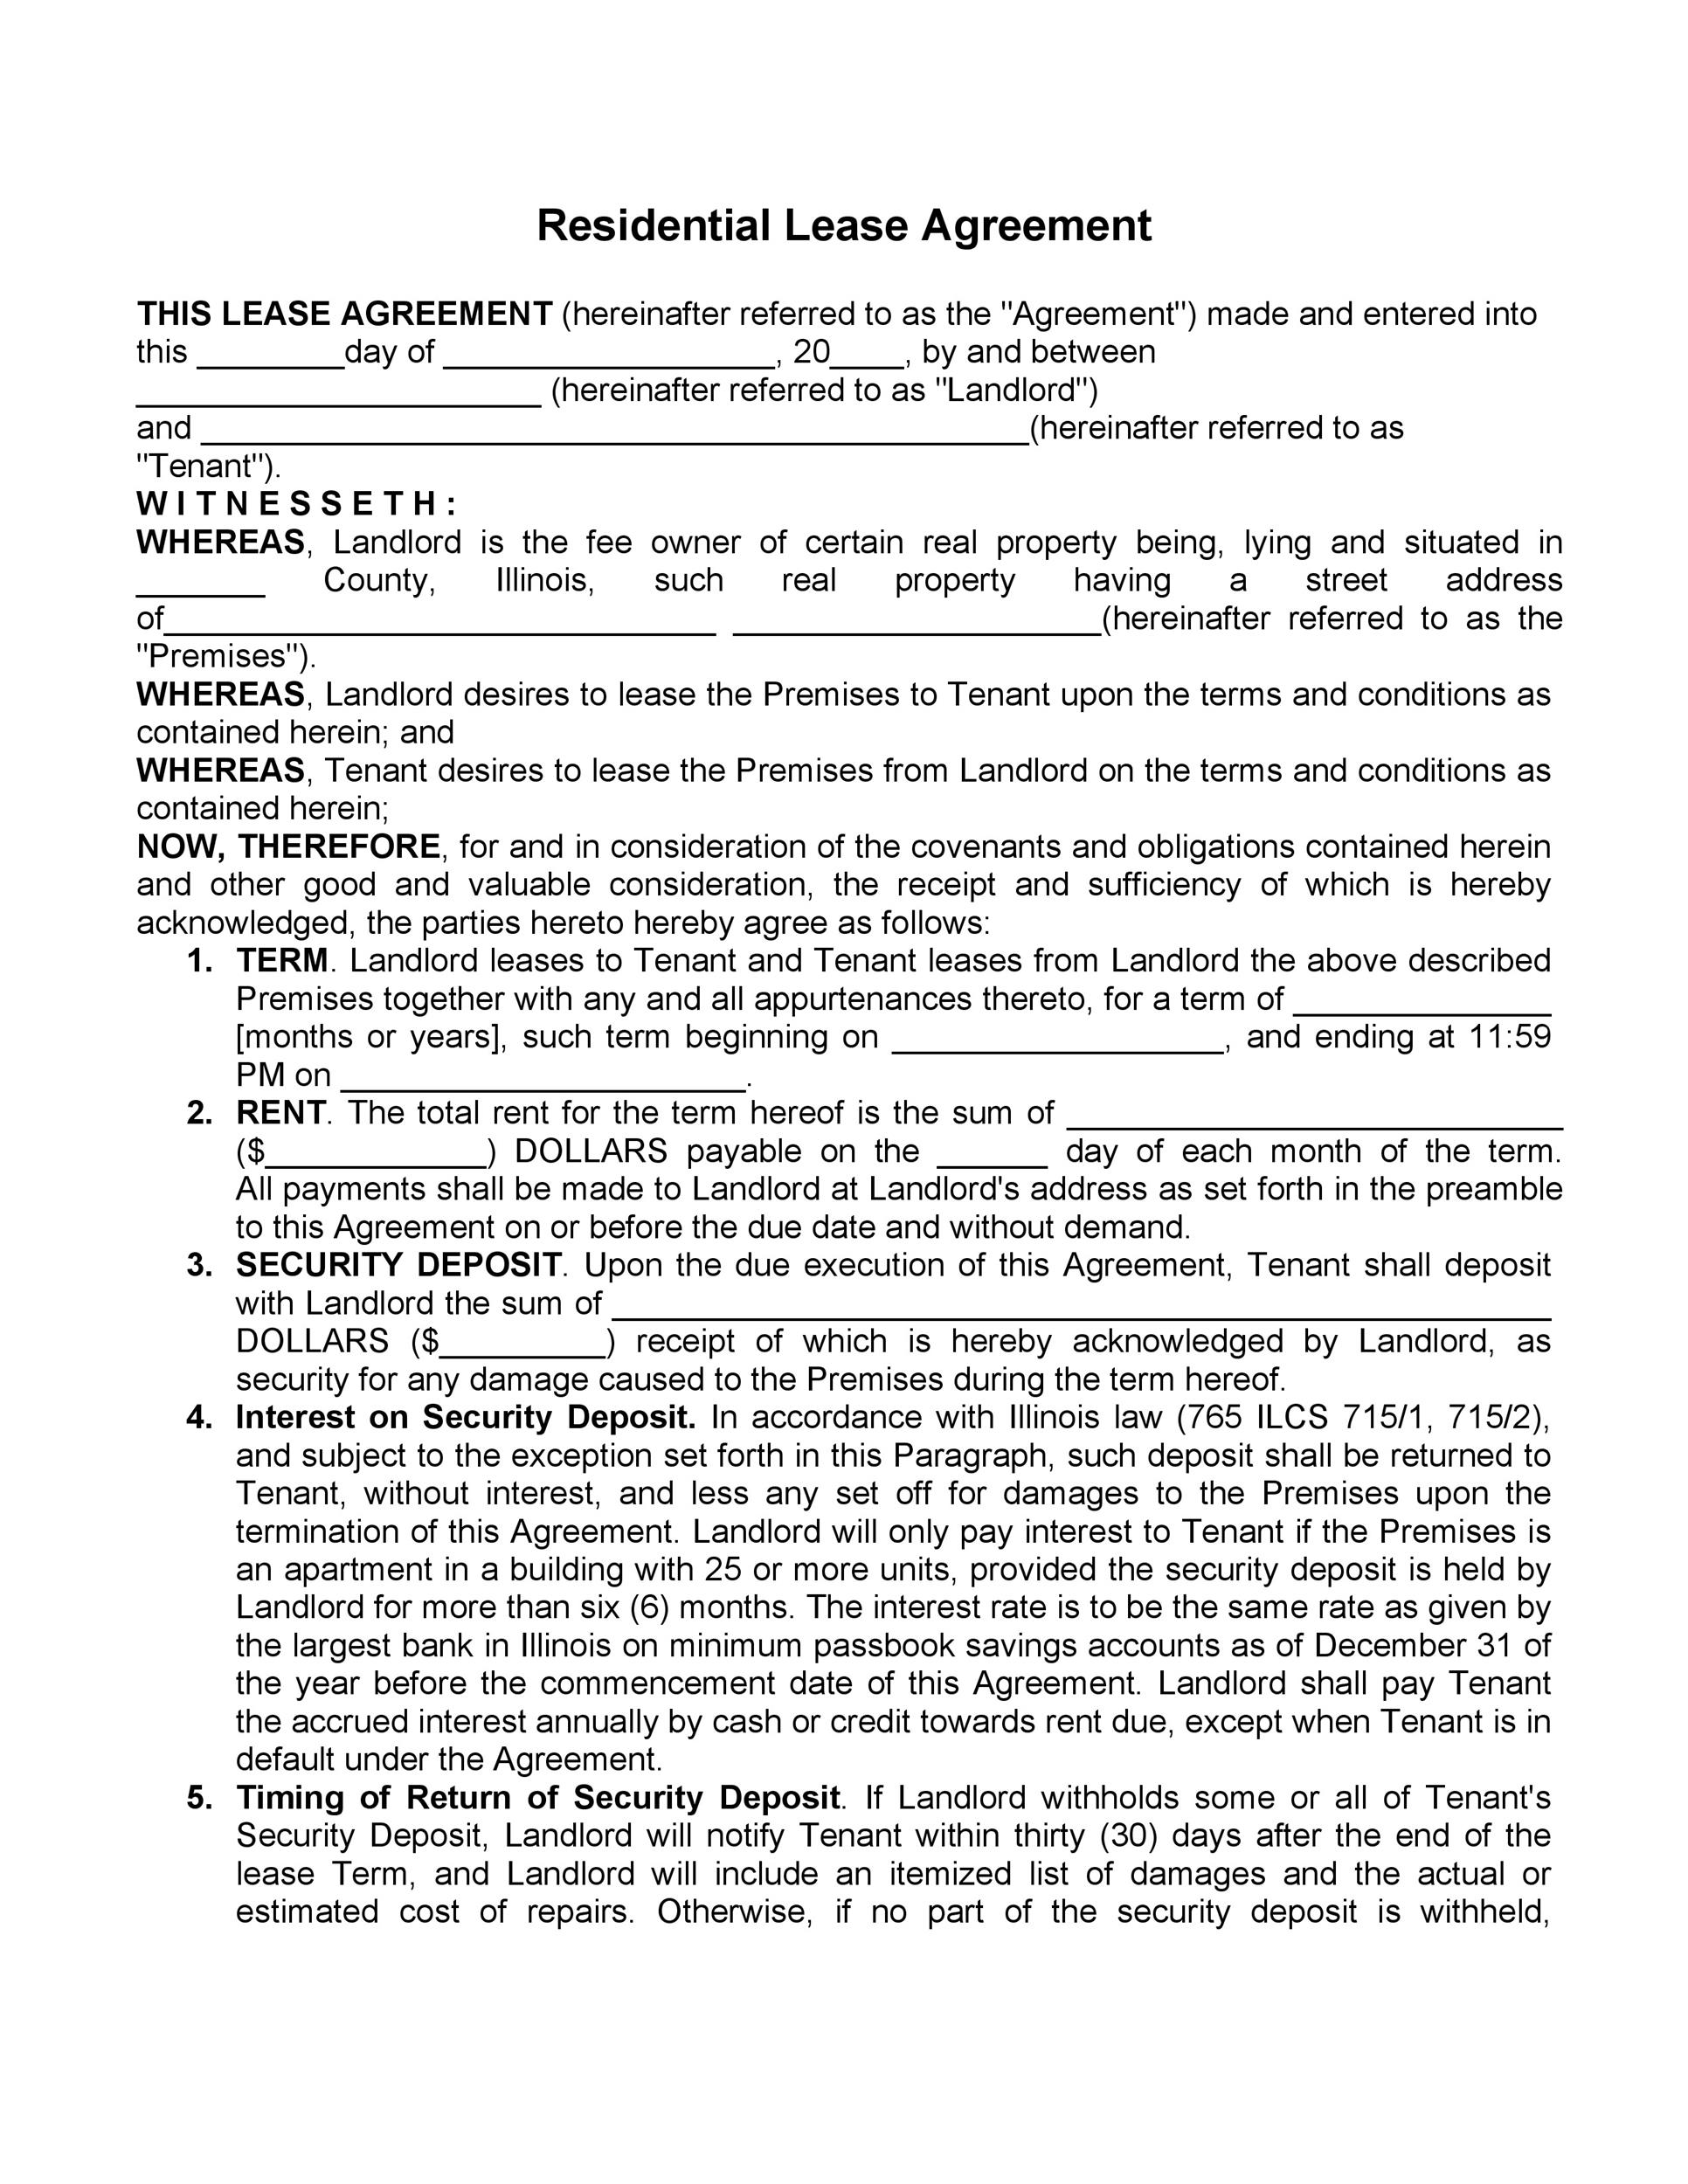 42 Rental Application Forms  Lease Agreement Templates - residential rental agreement